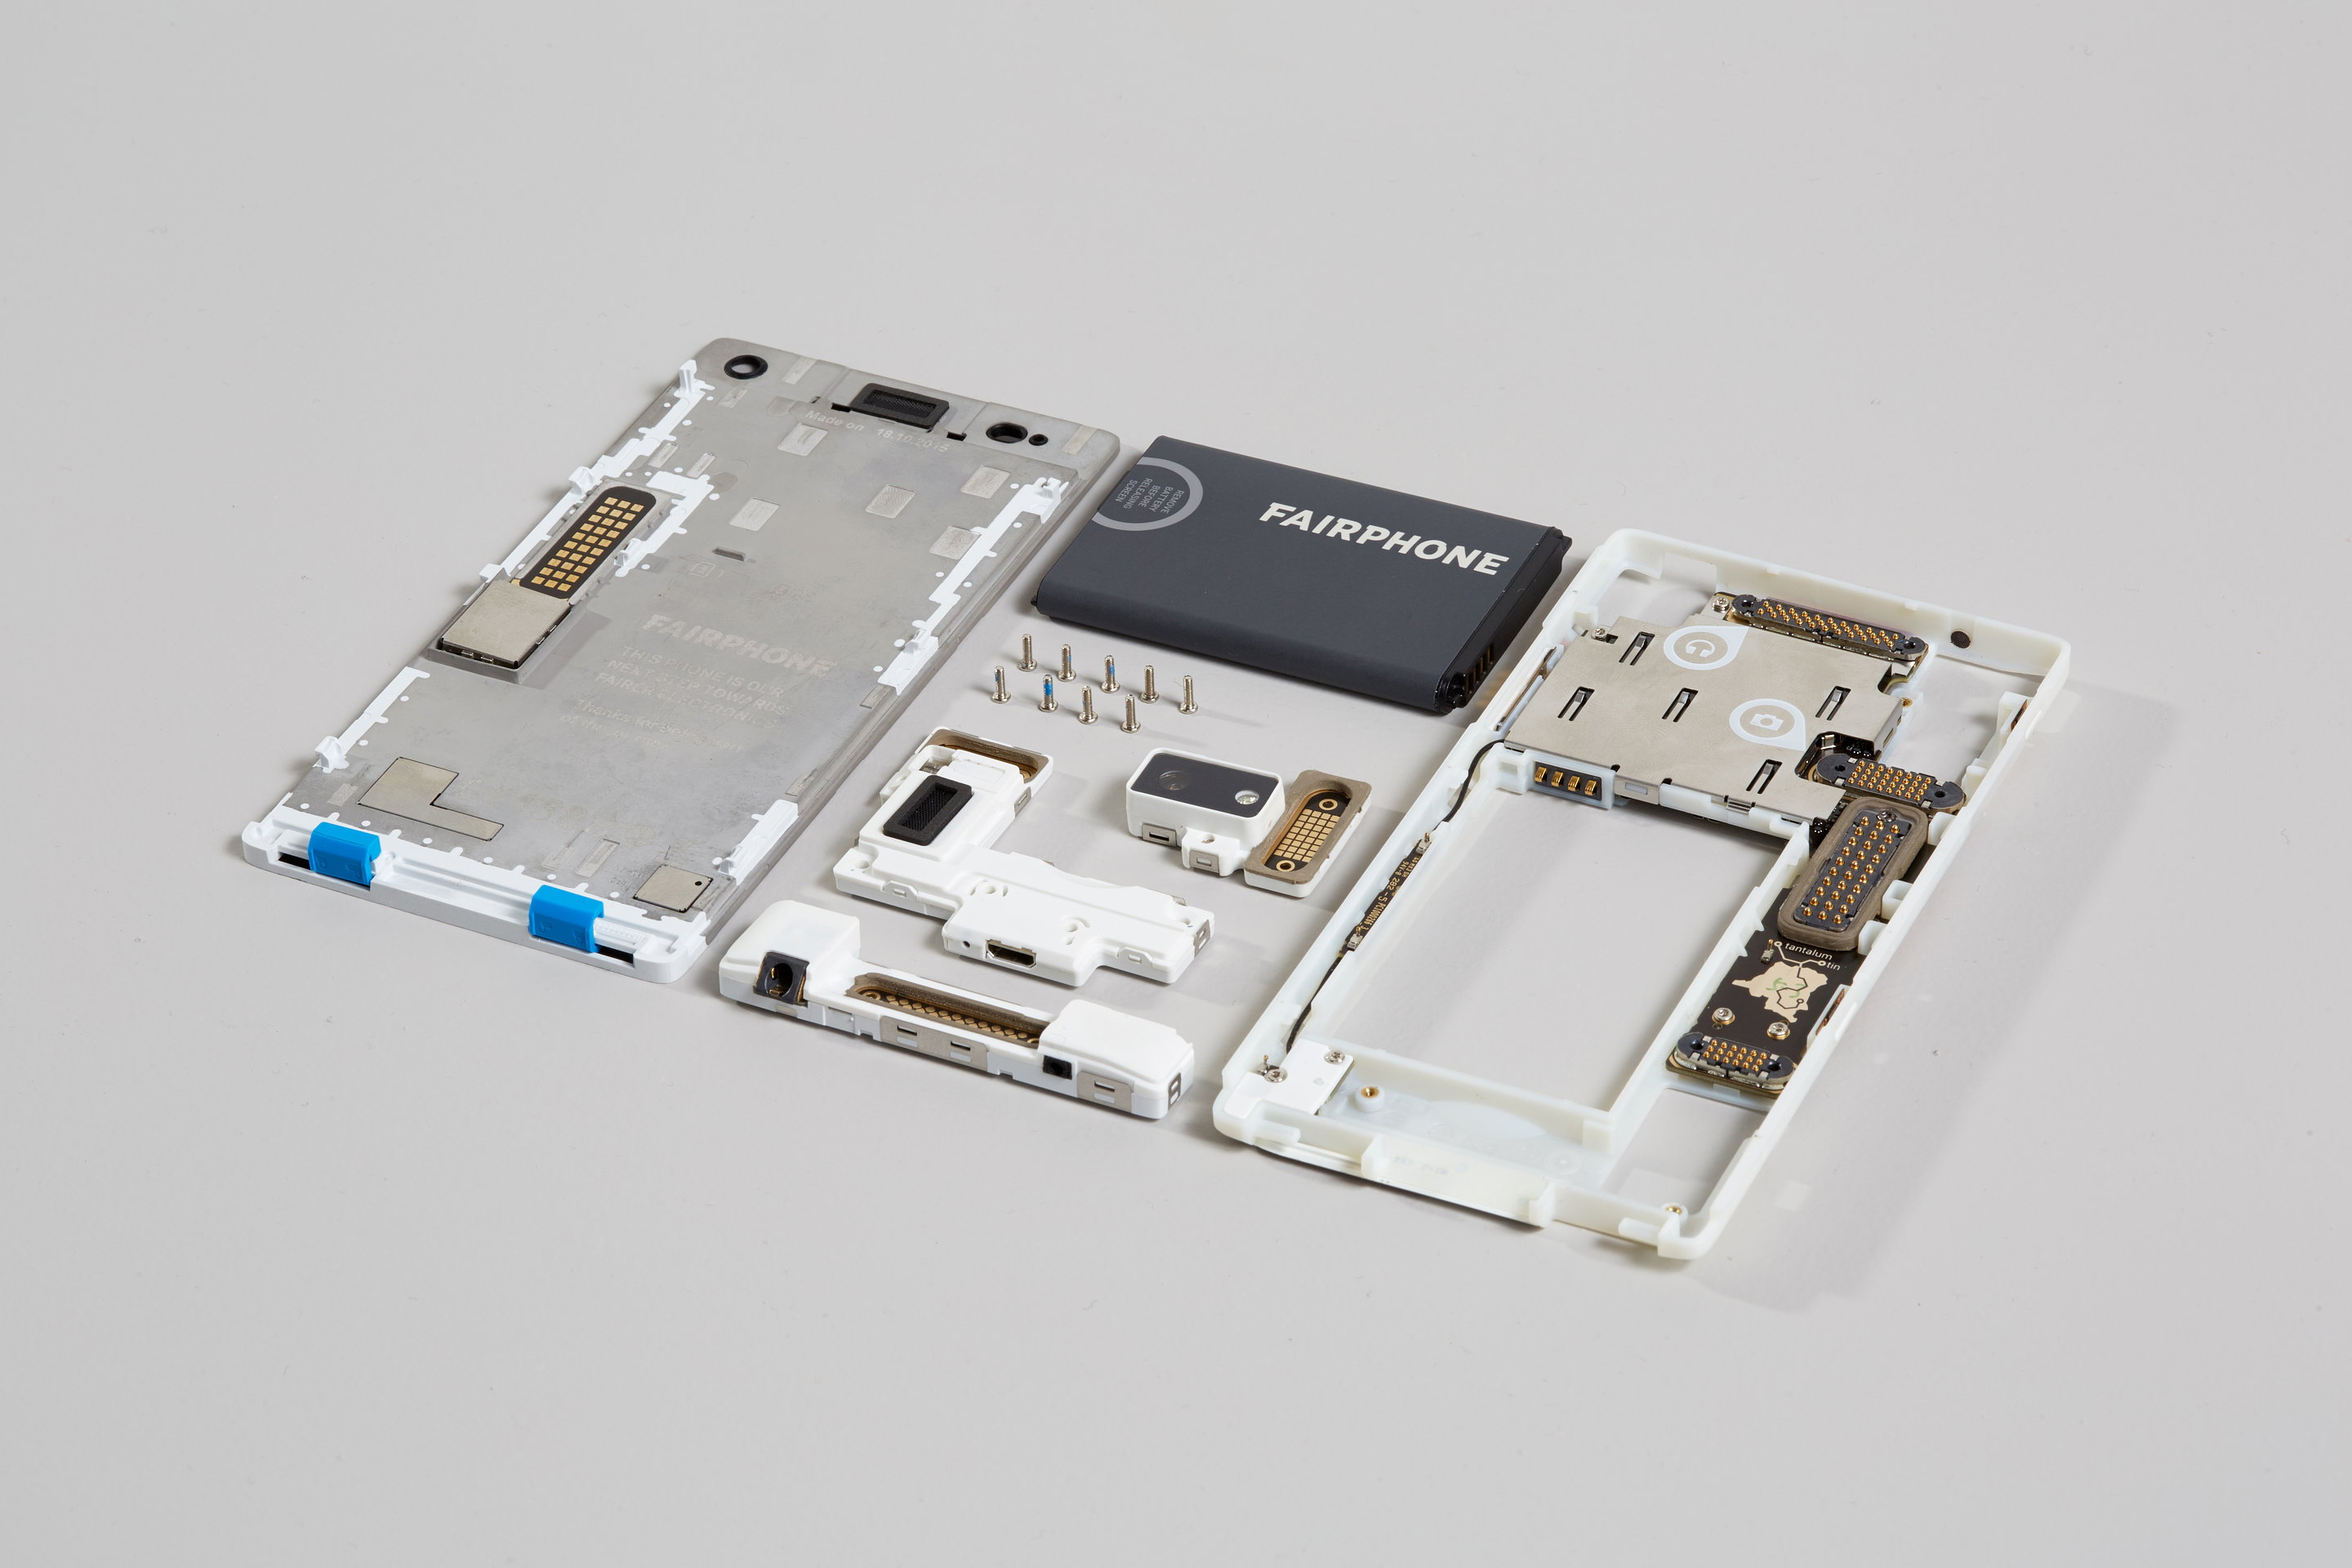 Fairphone 2 by Seymourpowell